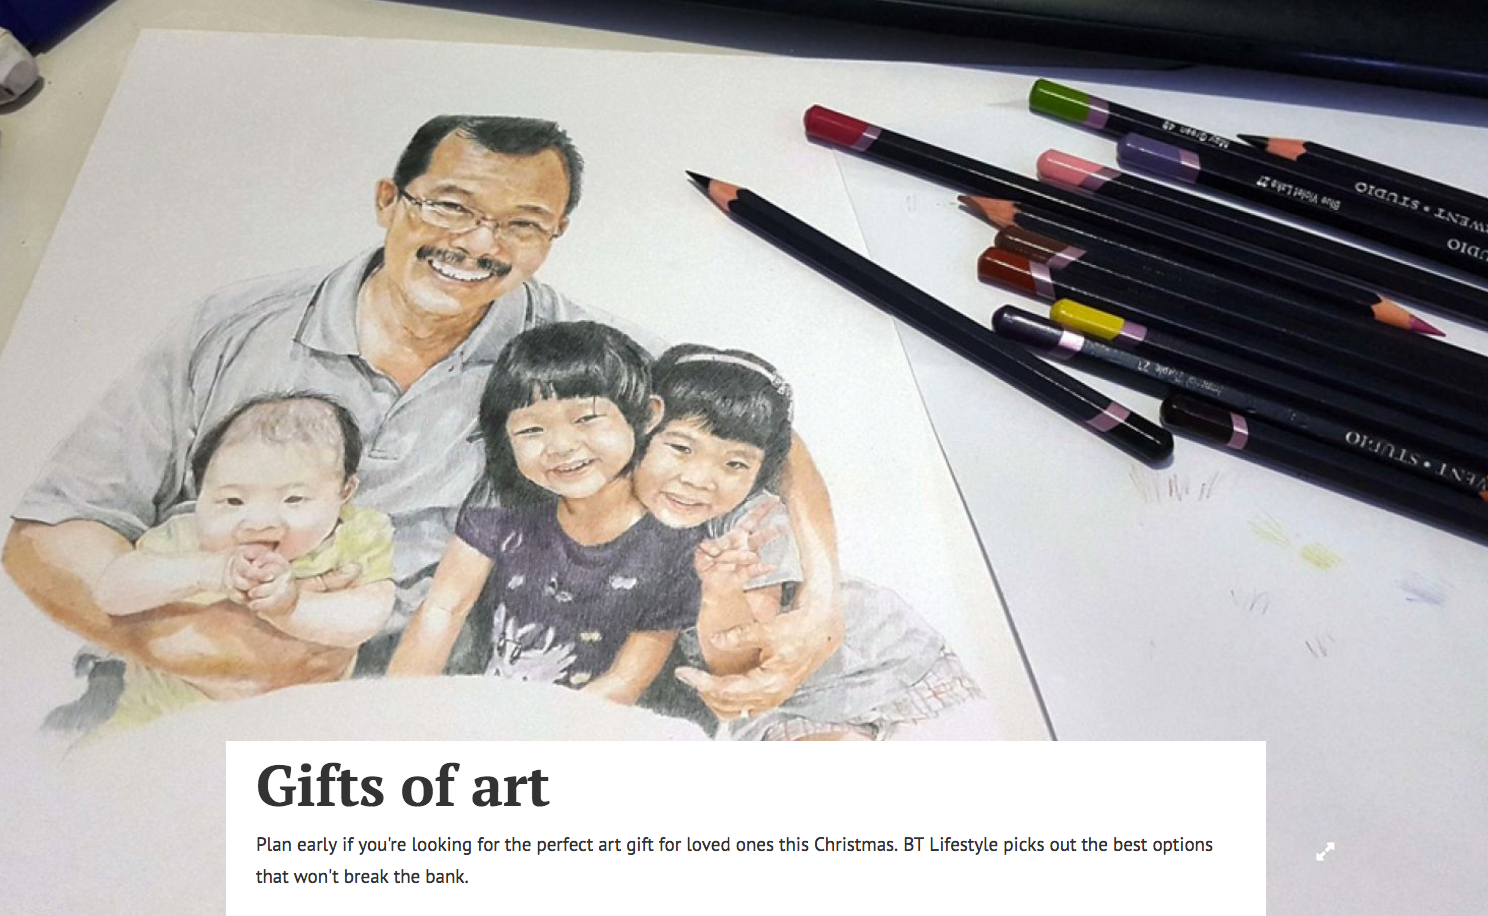 Gifts of art